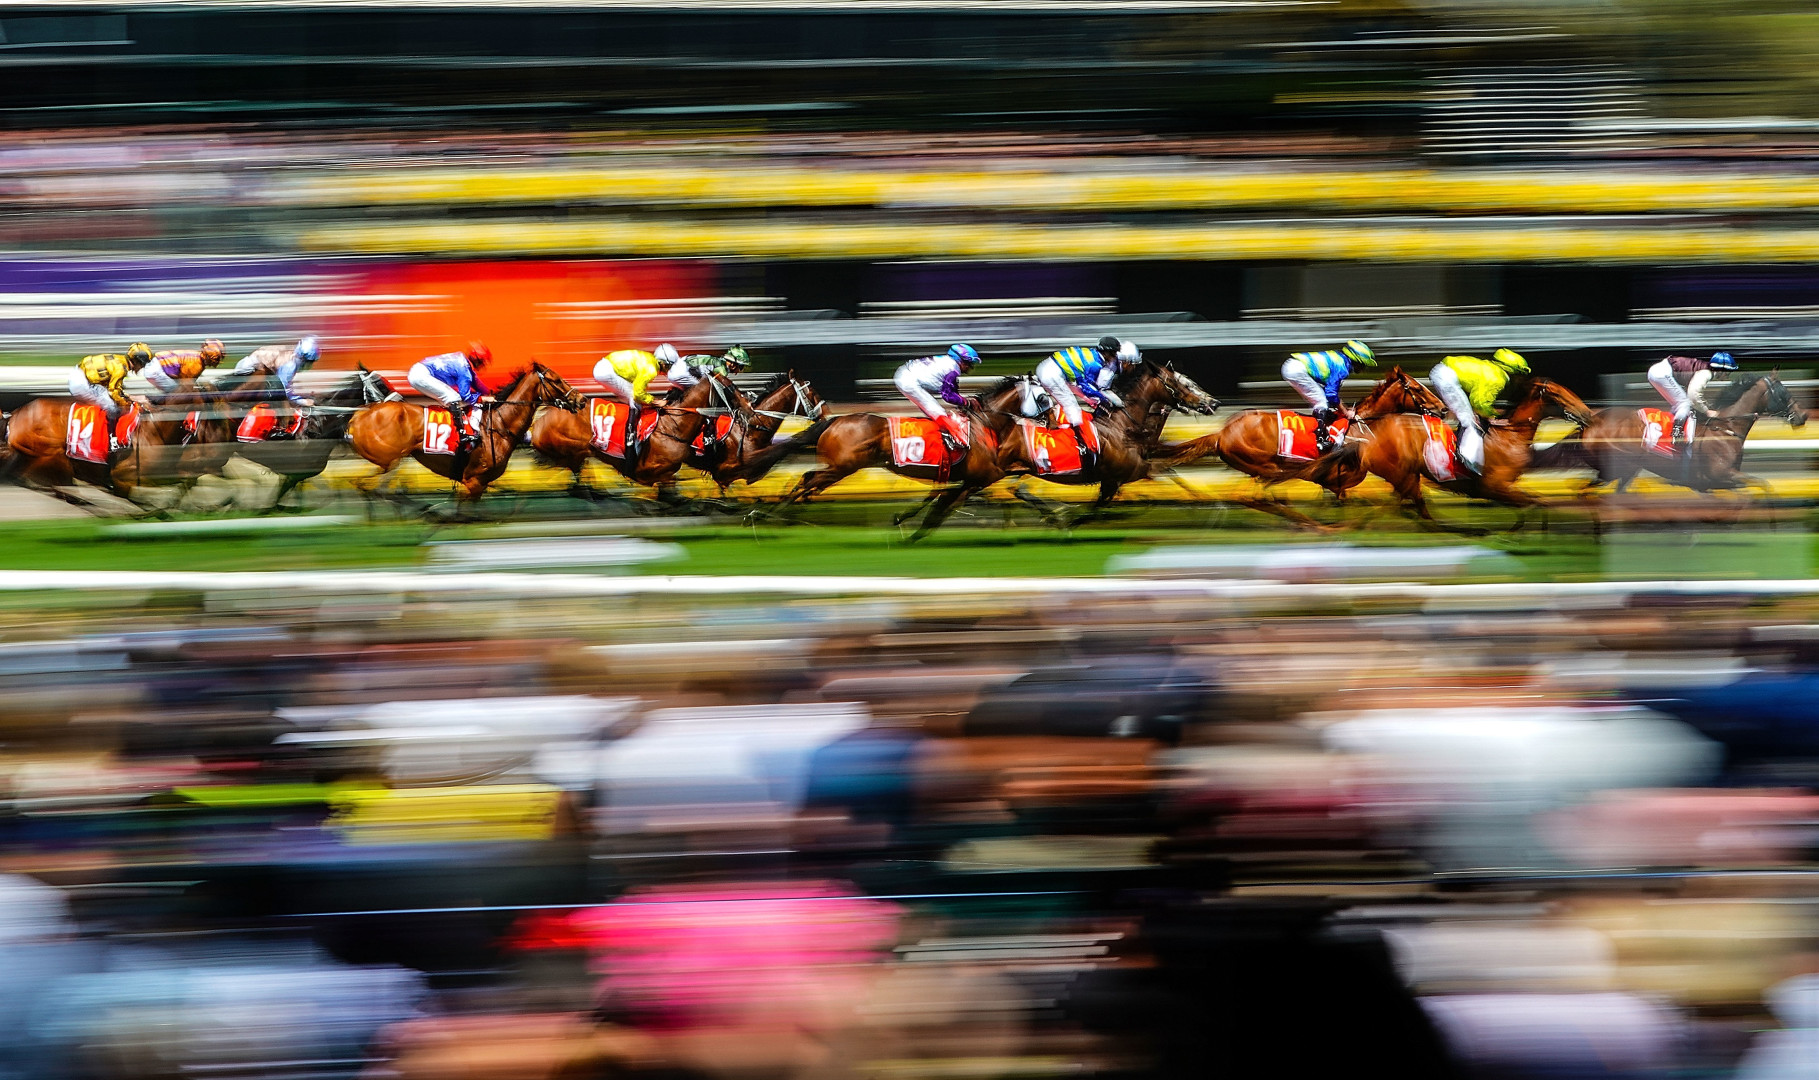 Melbourne Cup (optimized)